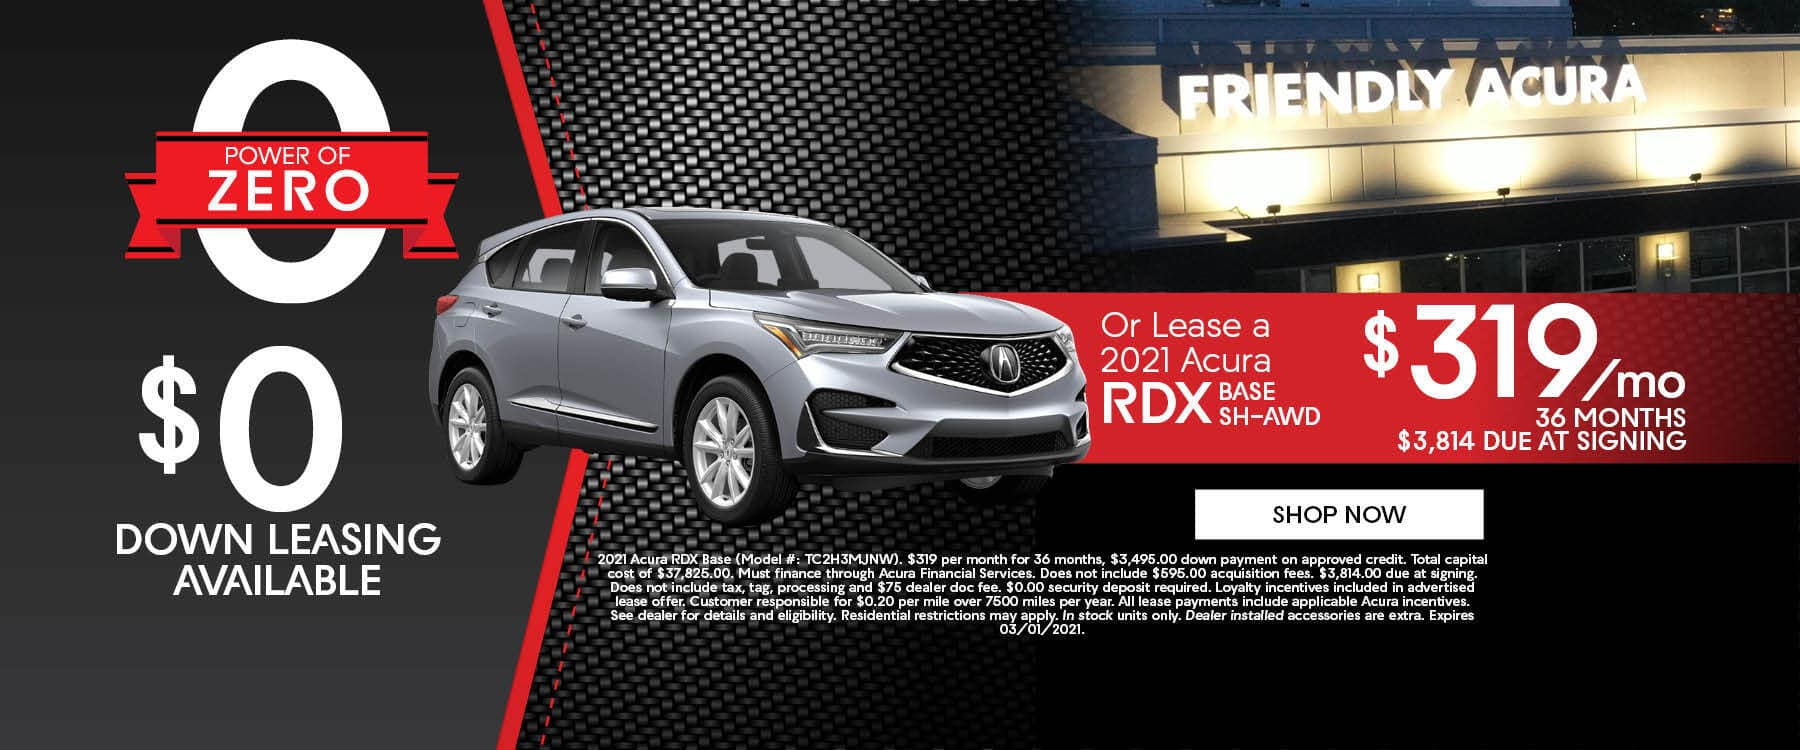 Get the Power of Zero at Friendly Acura of Middletown!